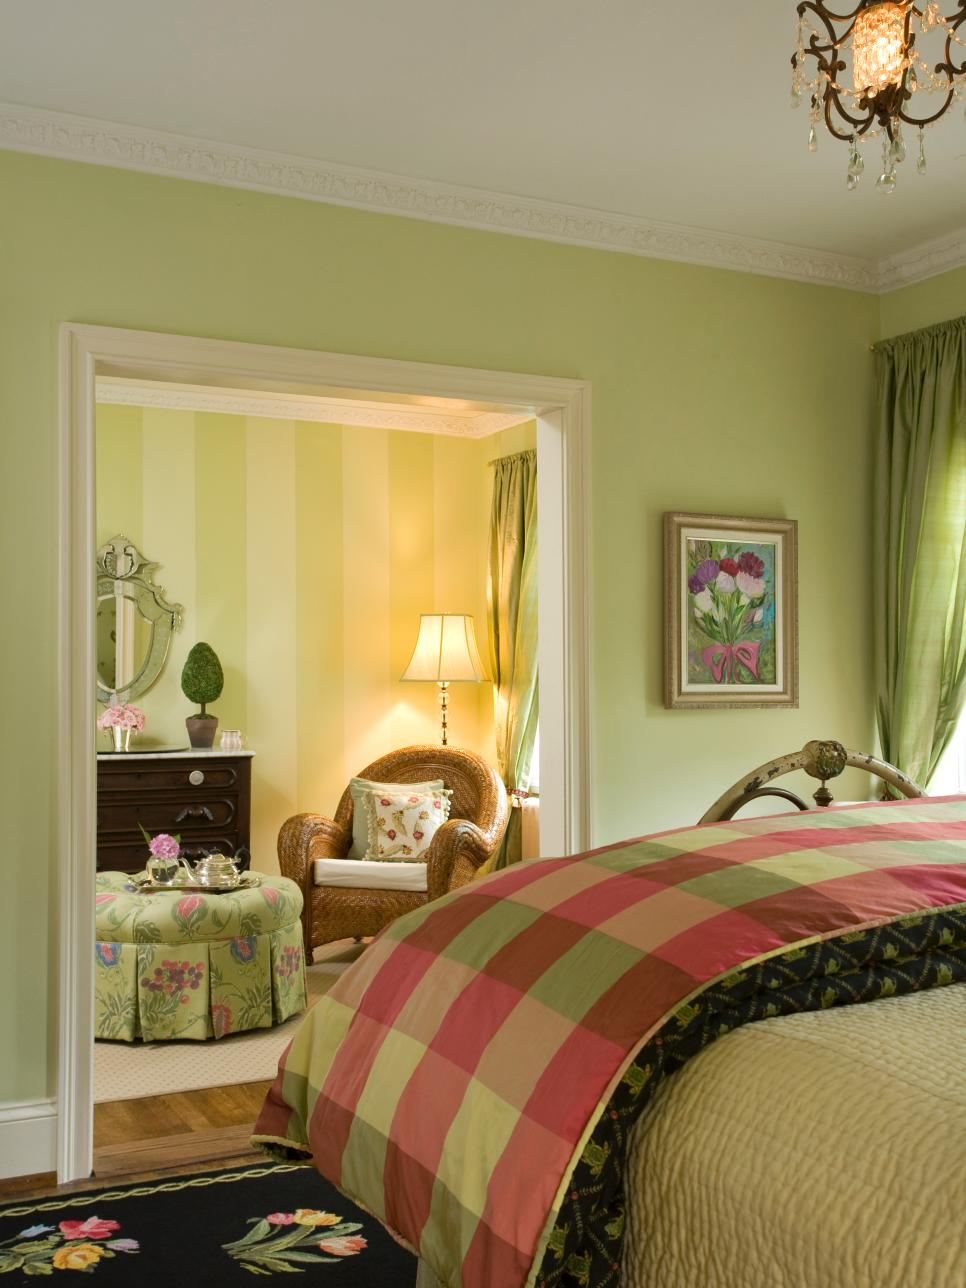 Beautiful bedroom colors warm and welcoming sszmjki